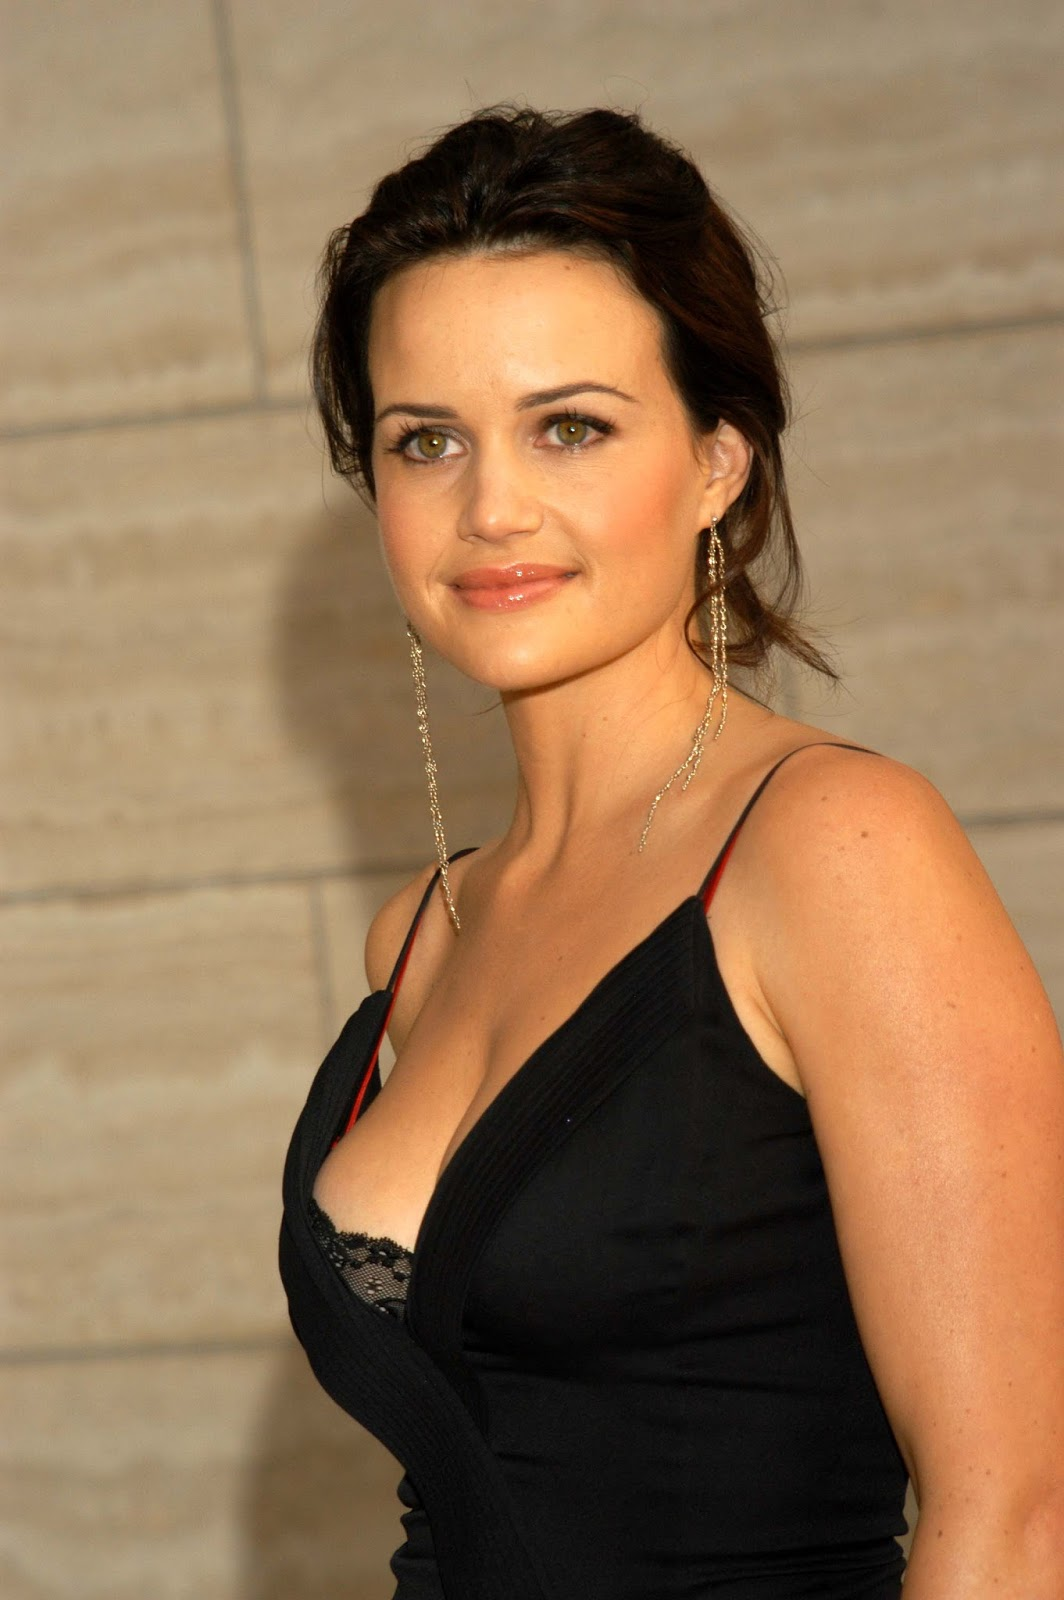 American Actress Nude Pictures